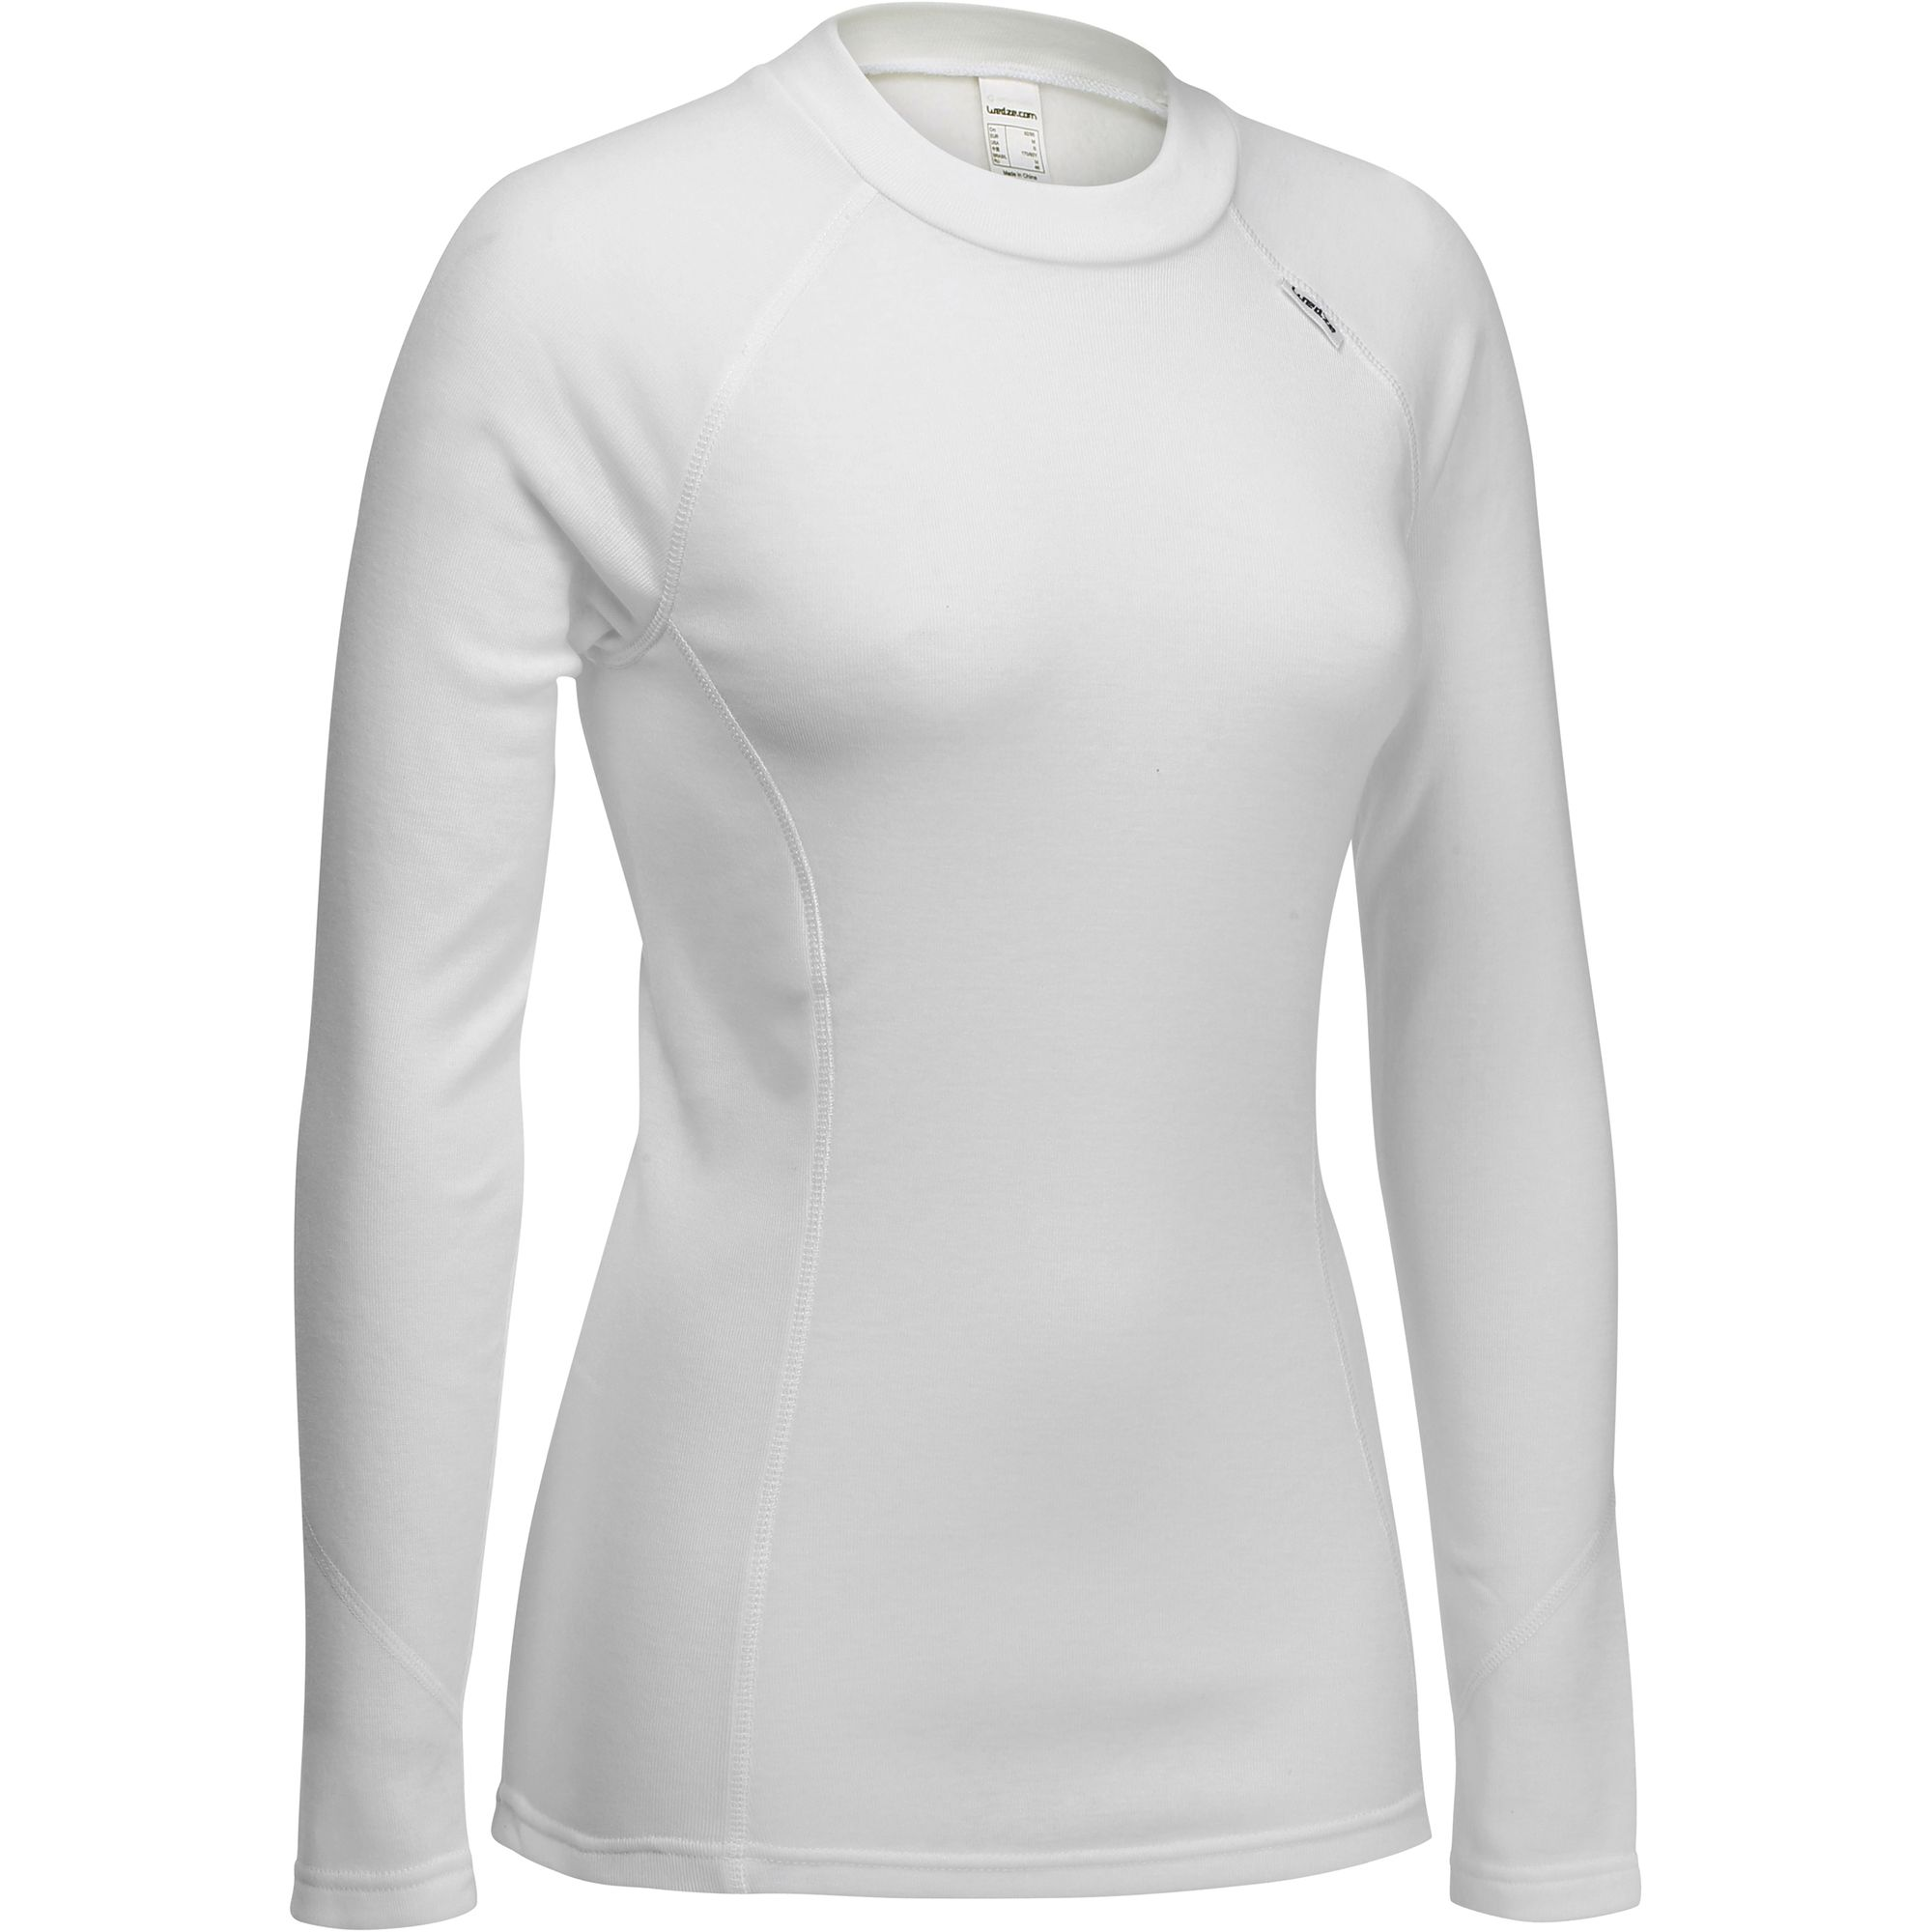 SOUS VETEMENT DE SKI FEMME SIMPLE WARM BLANC